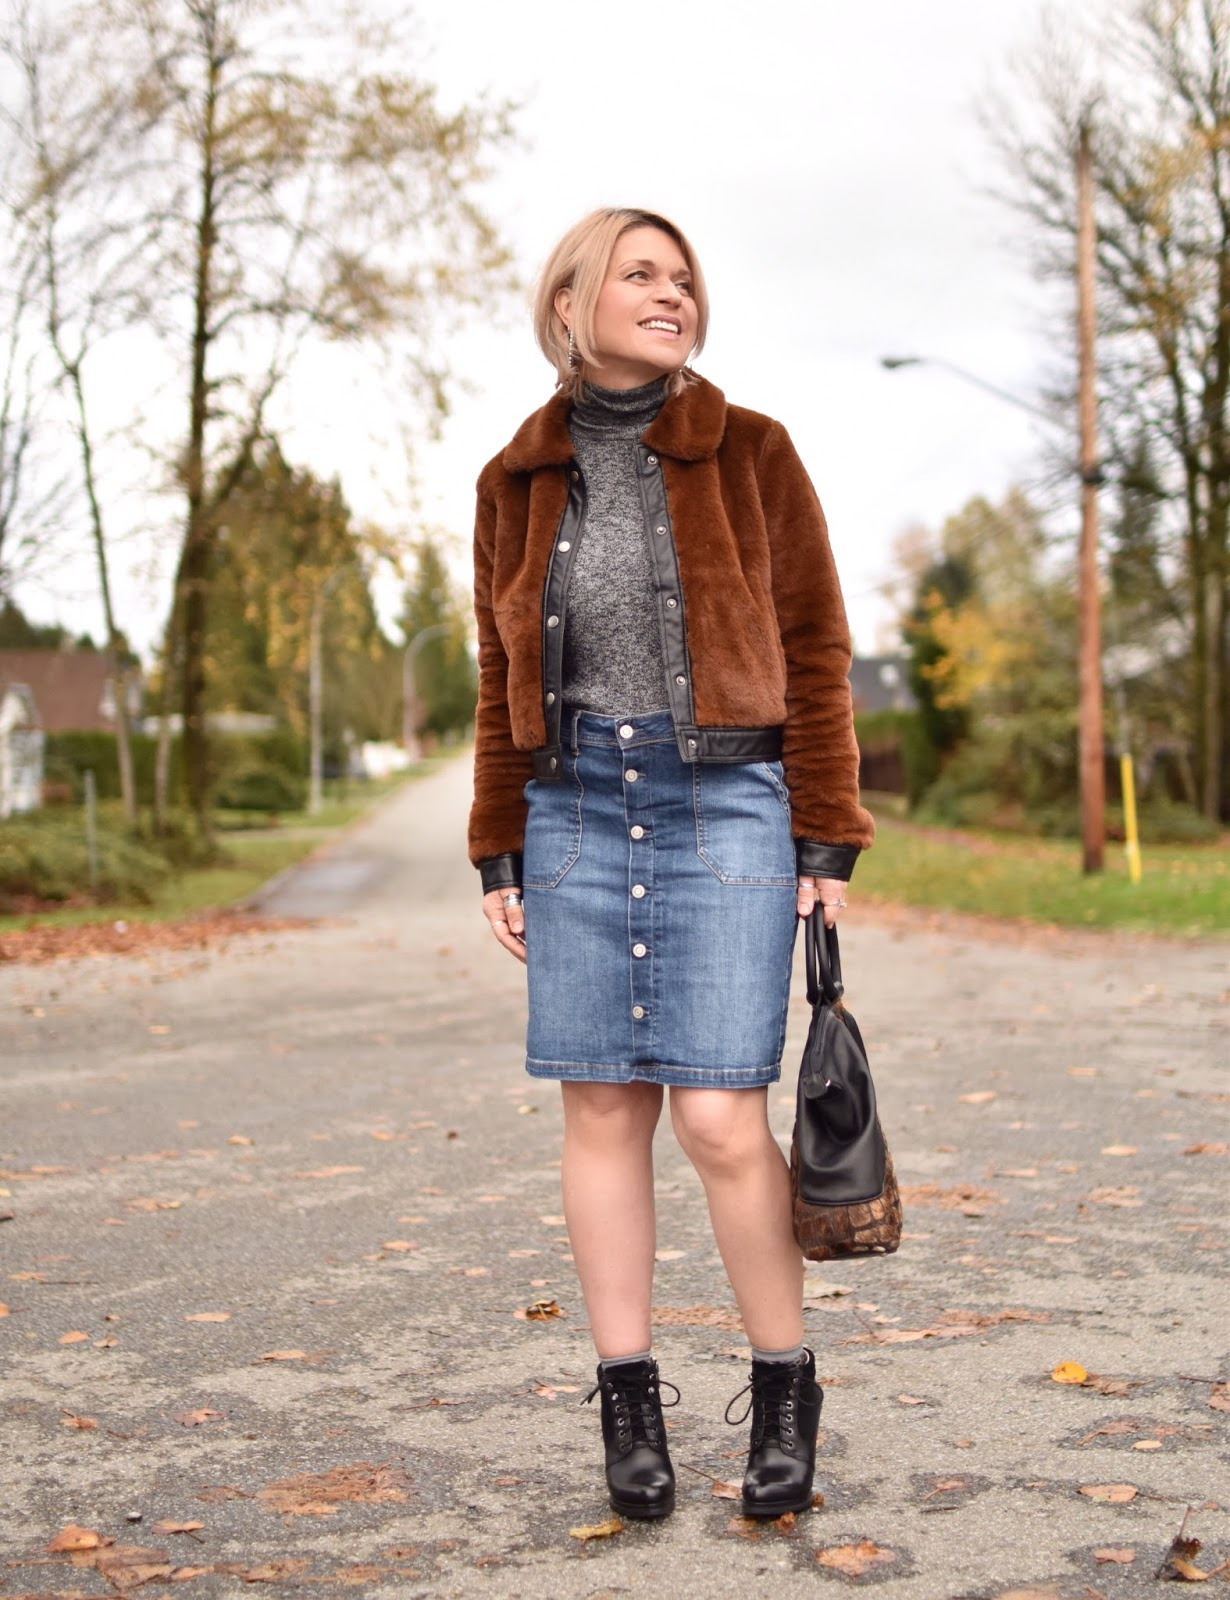 Monika Faulkner outfit inspiration - styling a faux-fur bomber jacket with a turtleneck sweater, button-front denim skirt, and lace-up booties